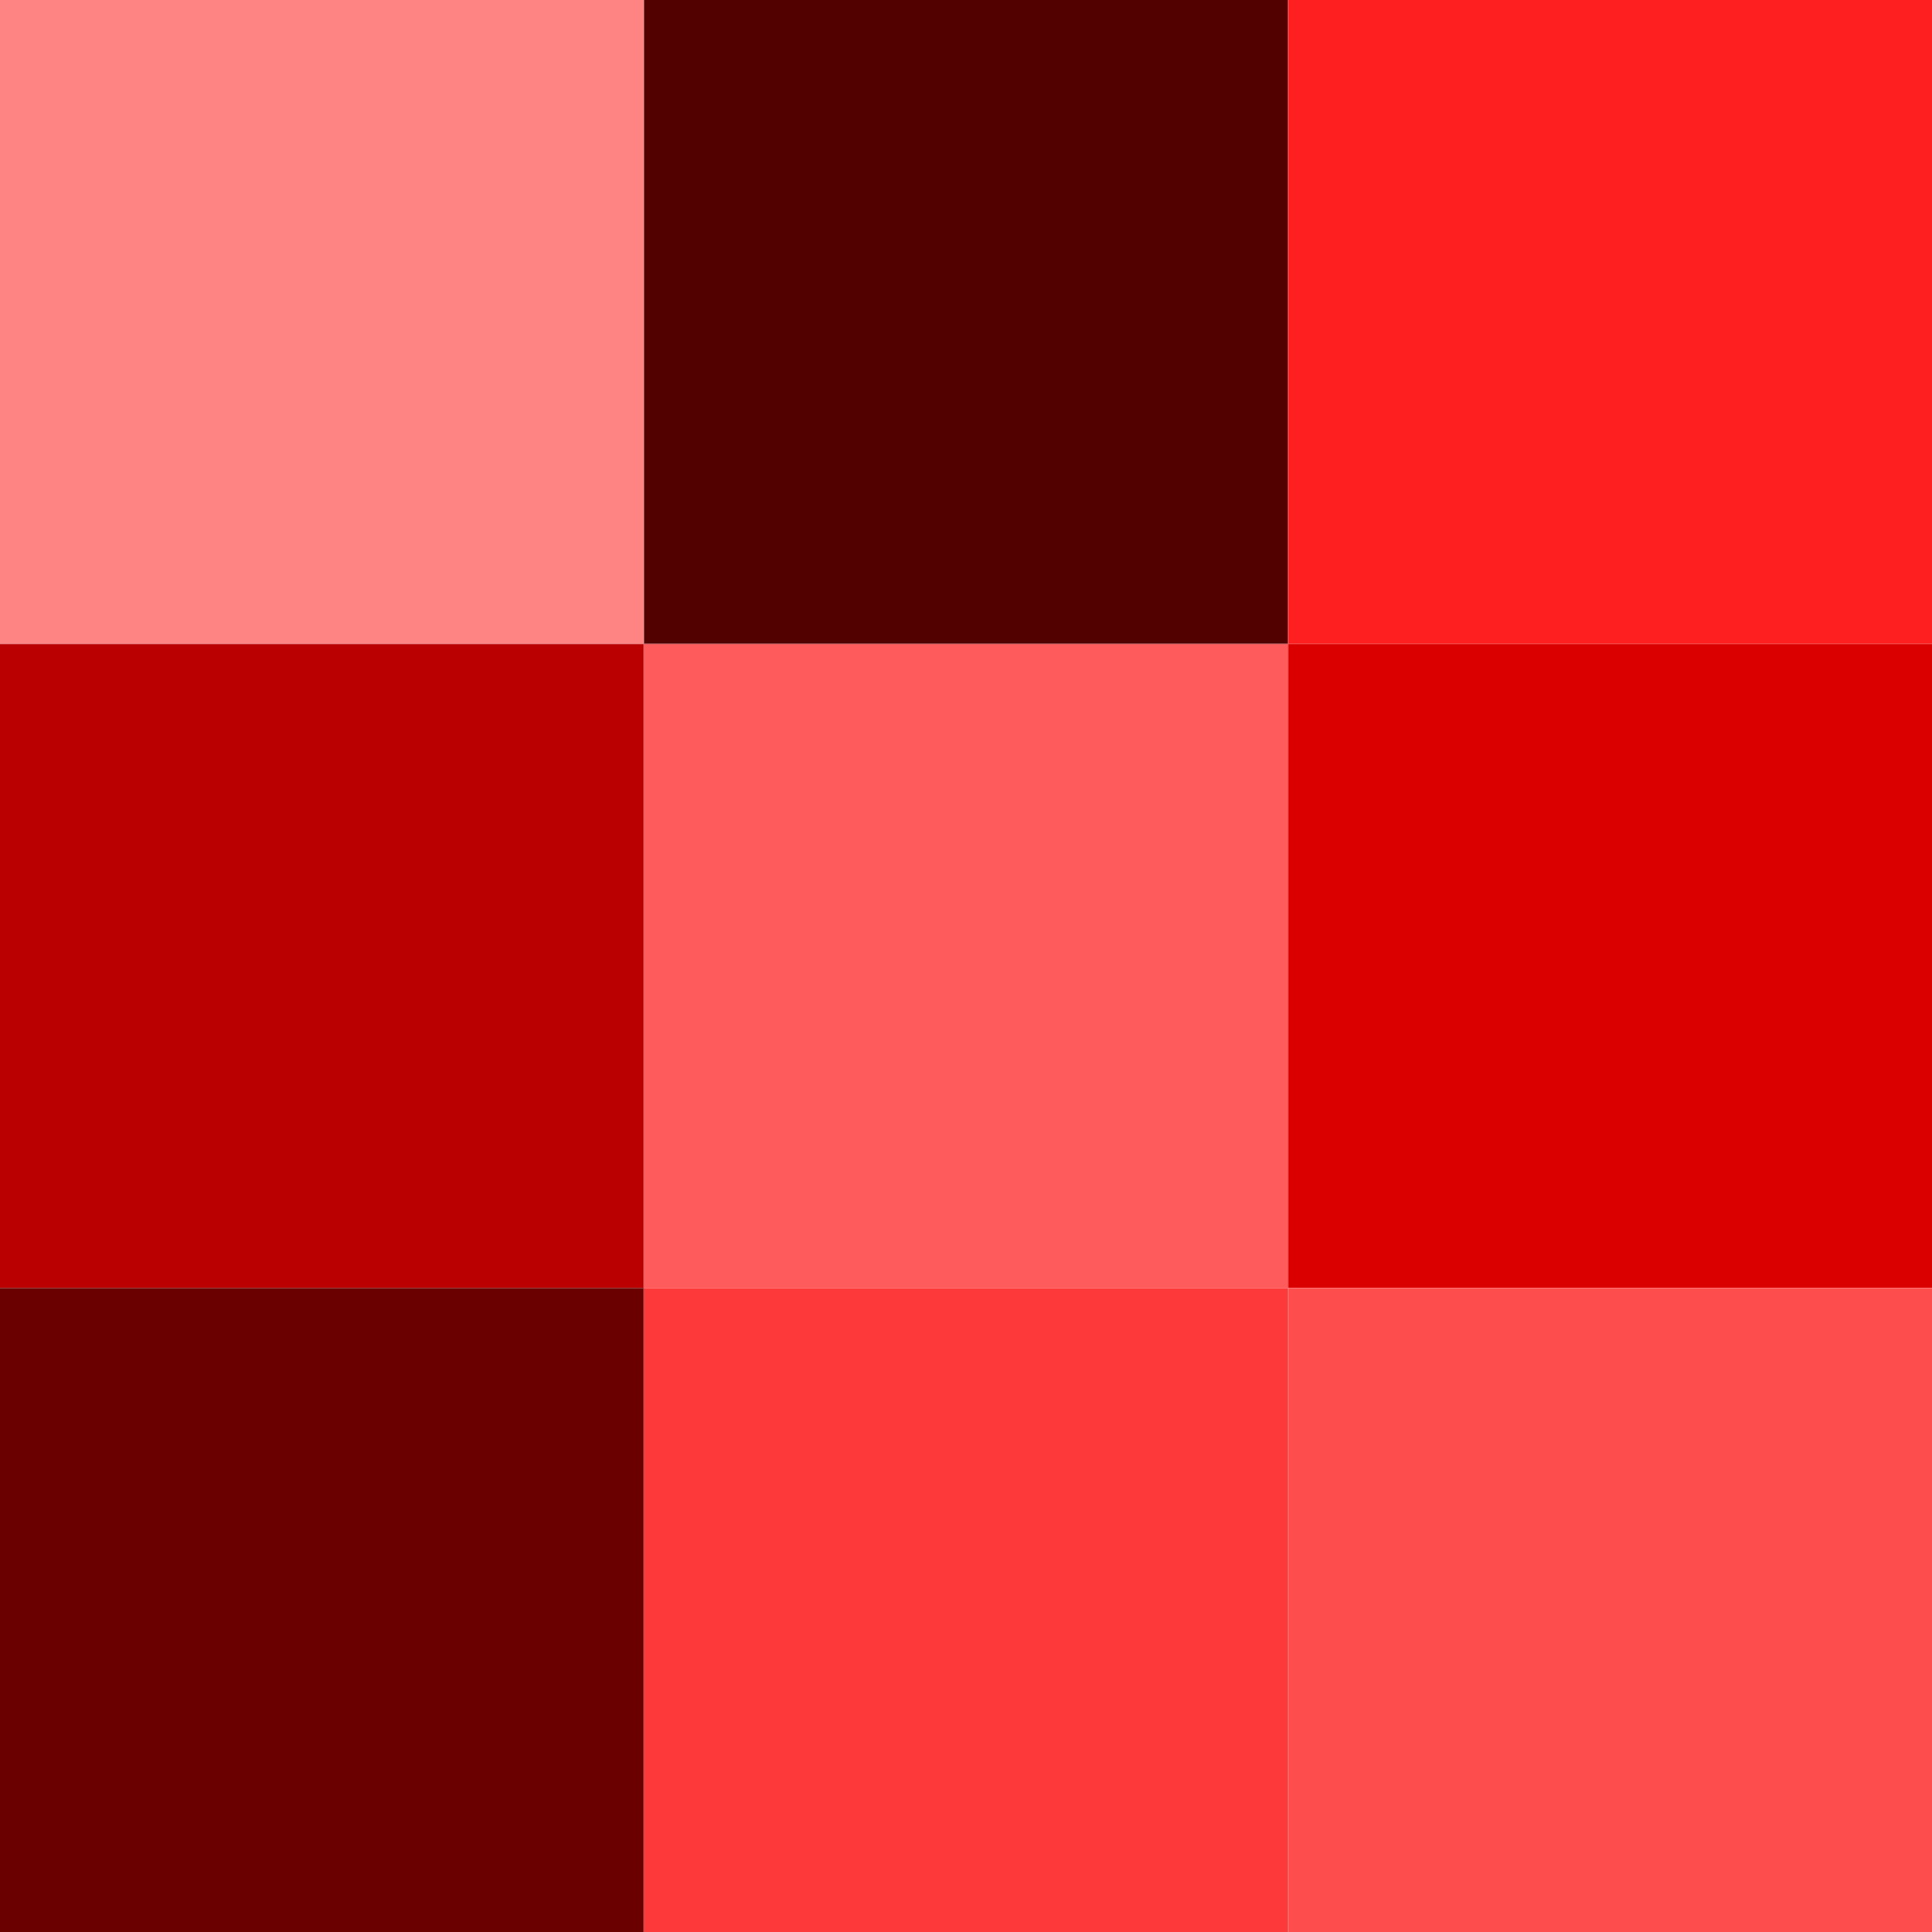 Shades of red - Wikipedia